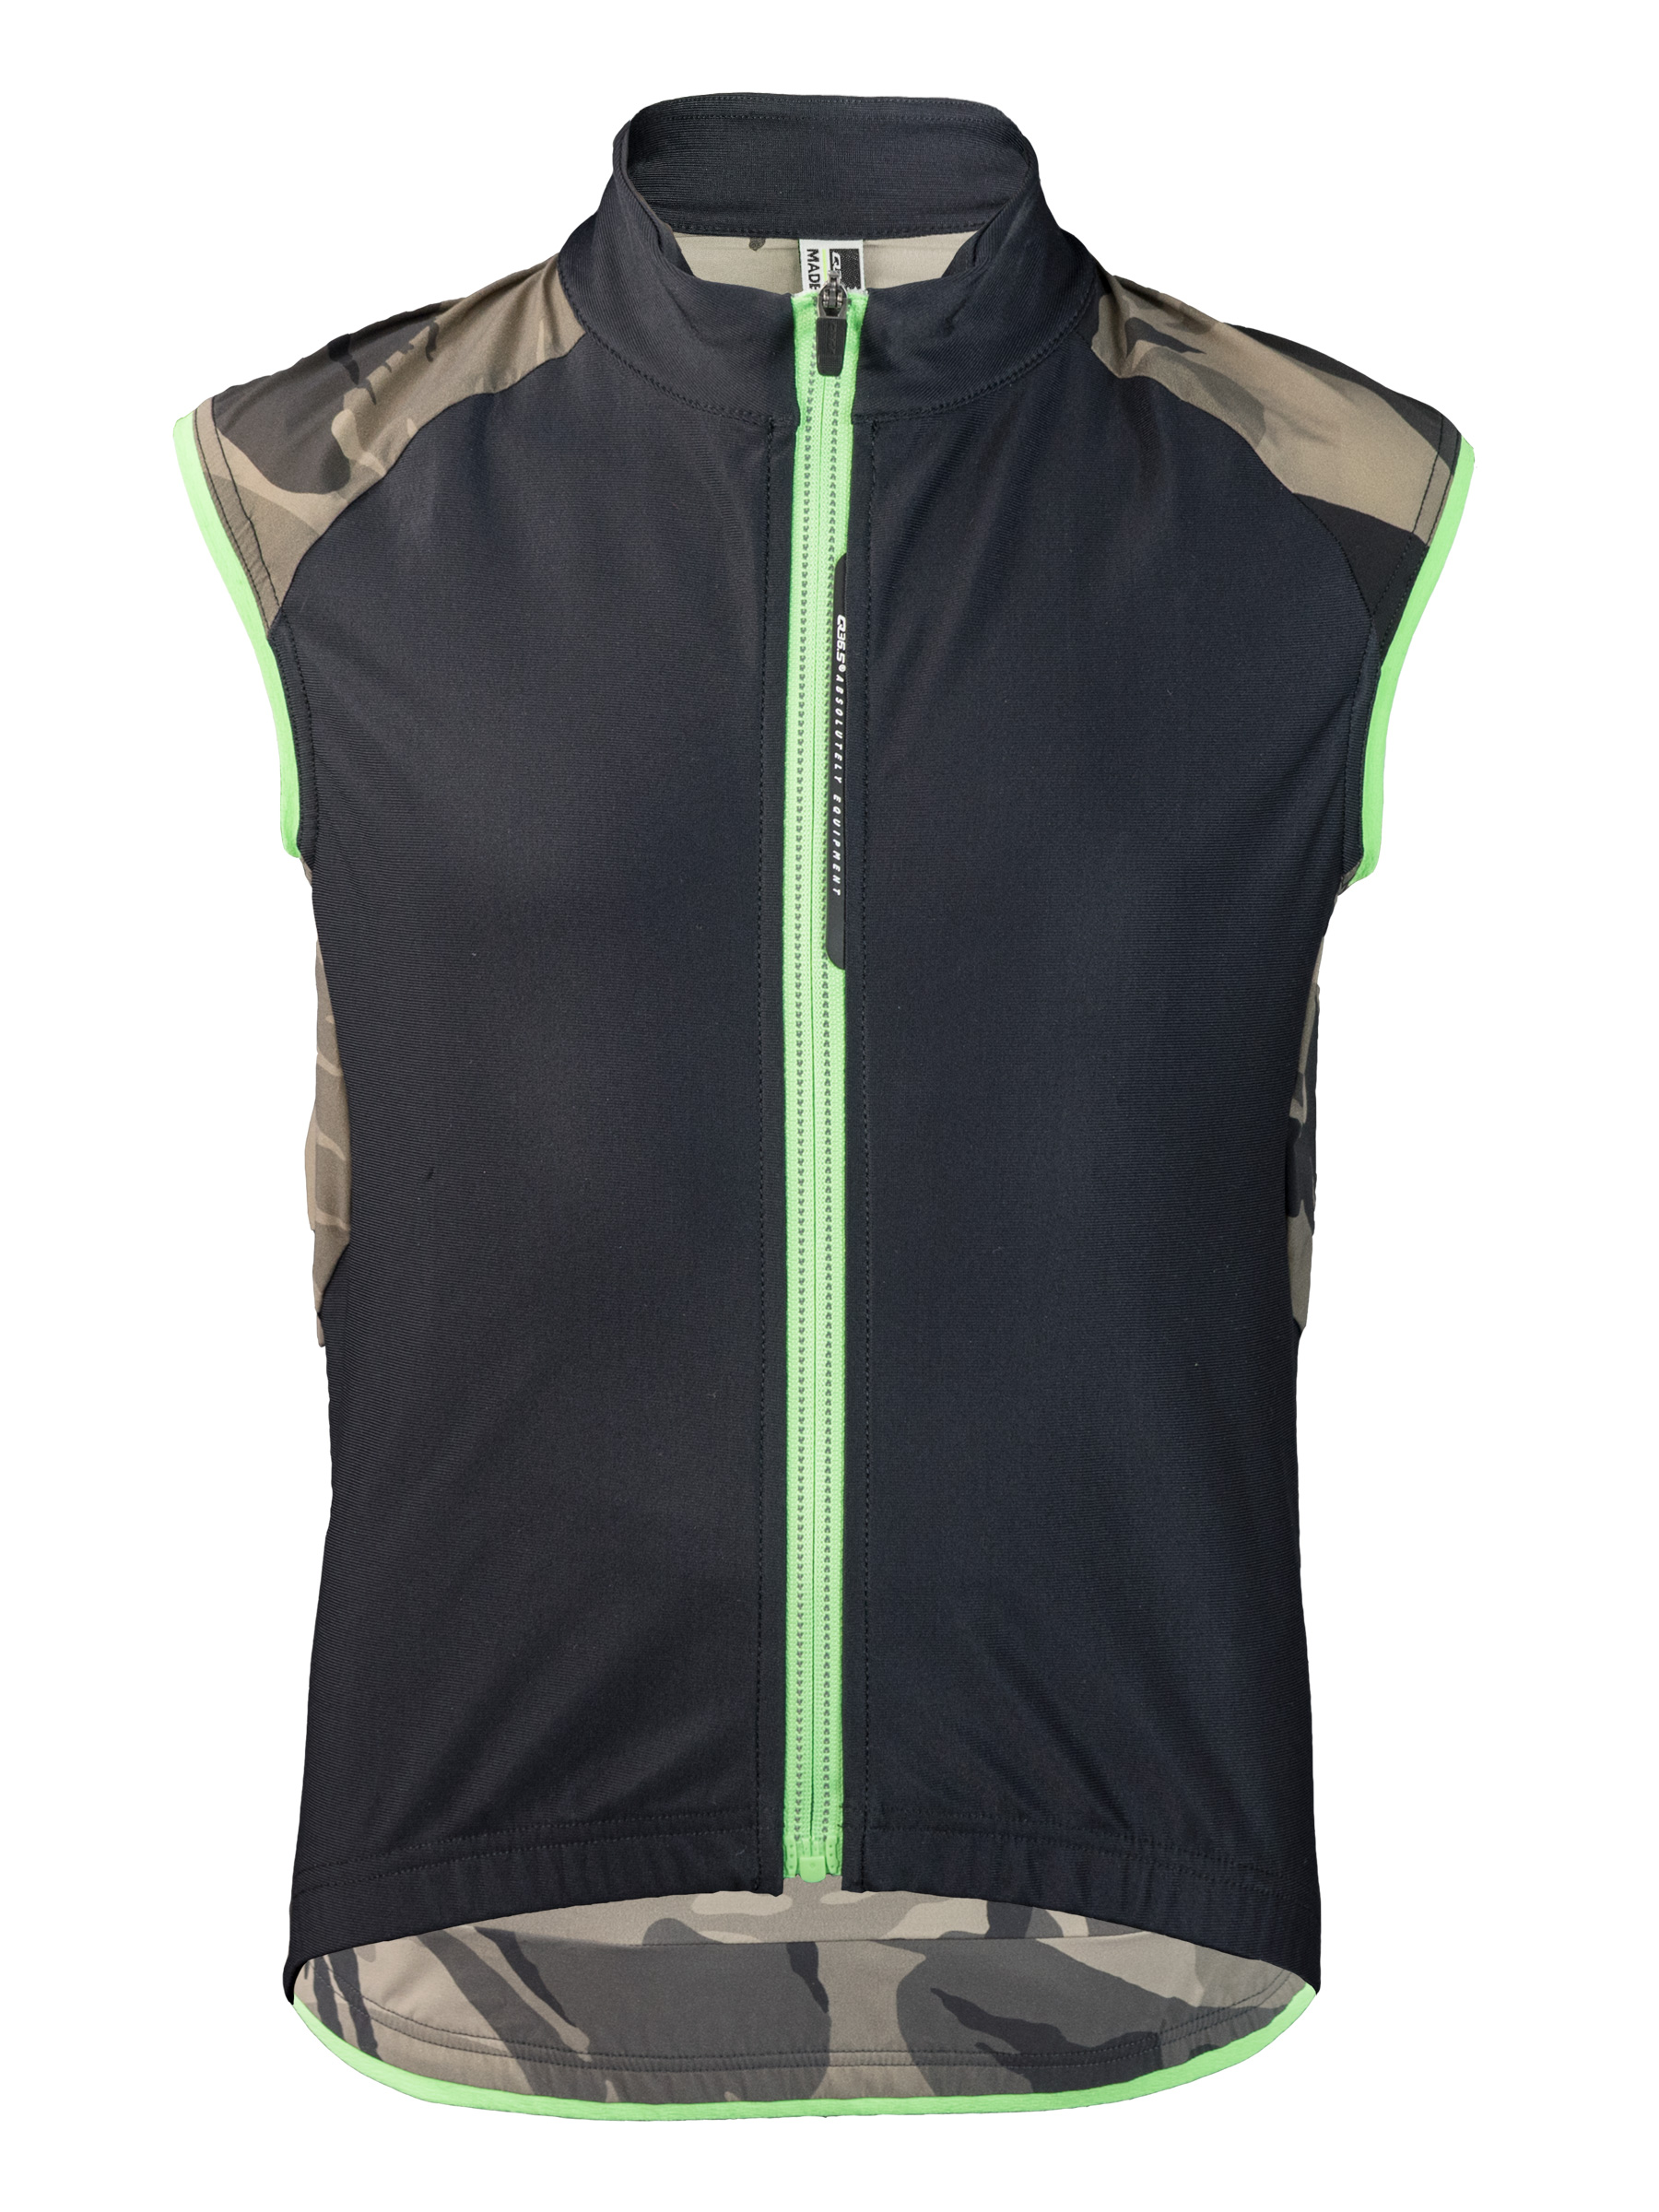 Gilet ciclismo L1 Essential Q36.5 camouflage